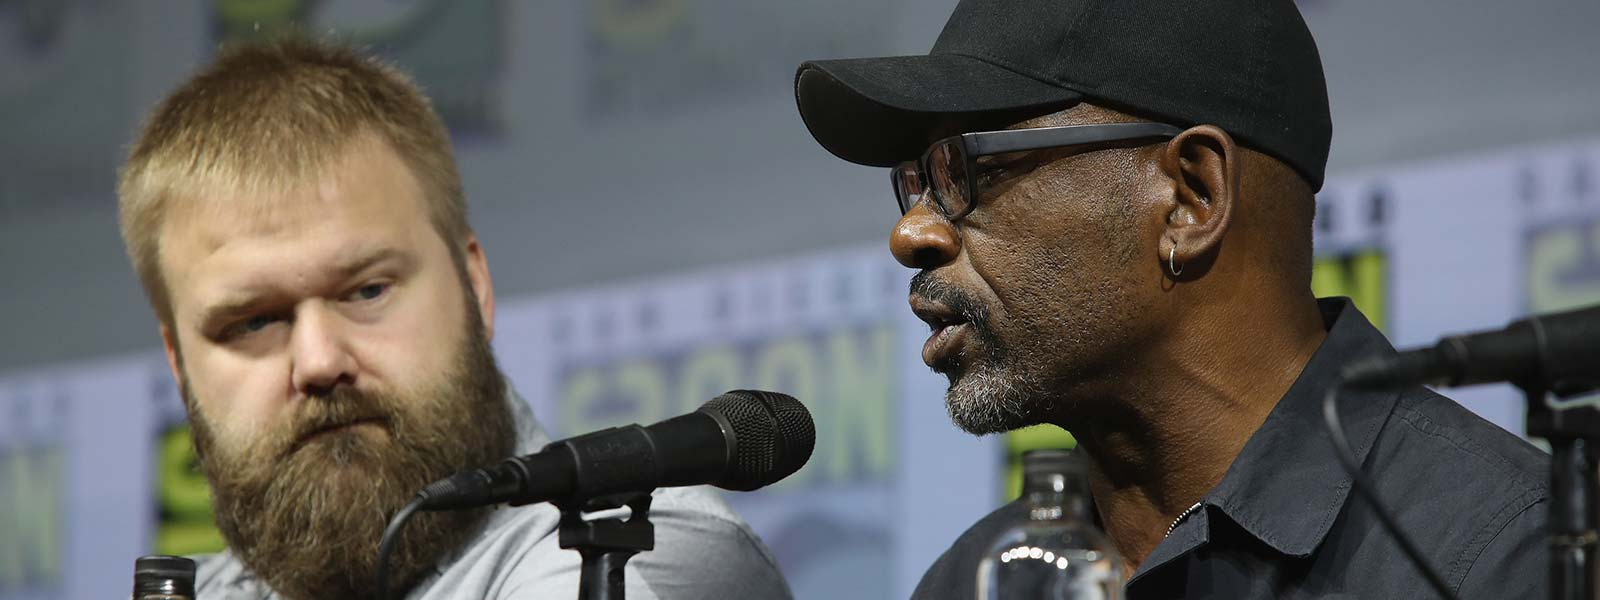 fear-the-walking-dead-season-4-comic-con-panel-robert-kirkman-lennie-james-800×600